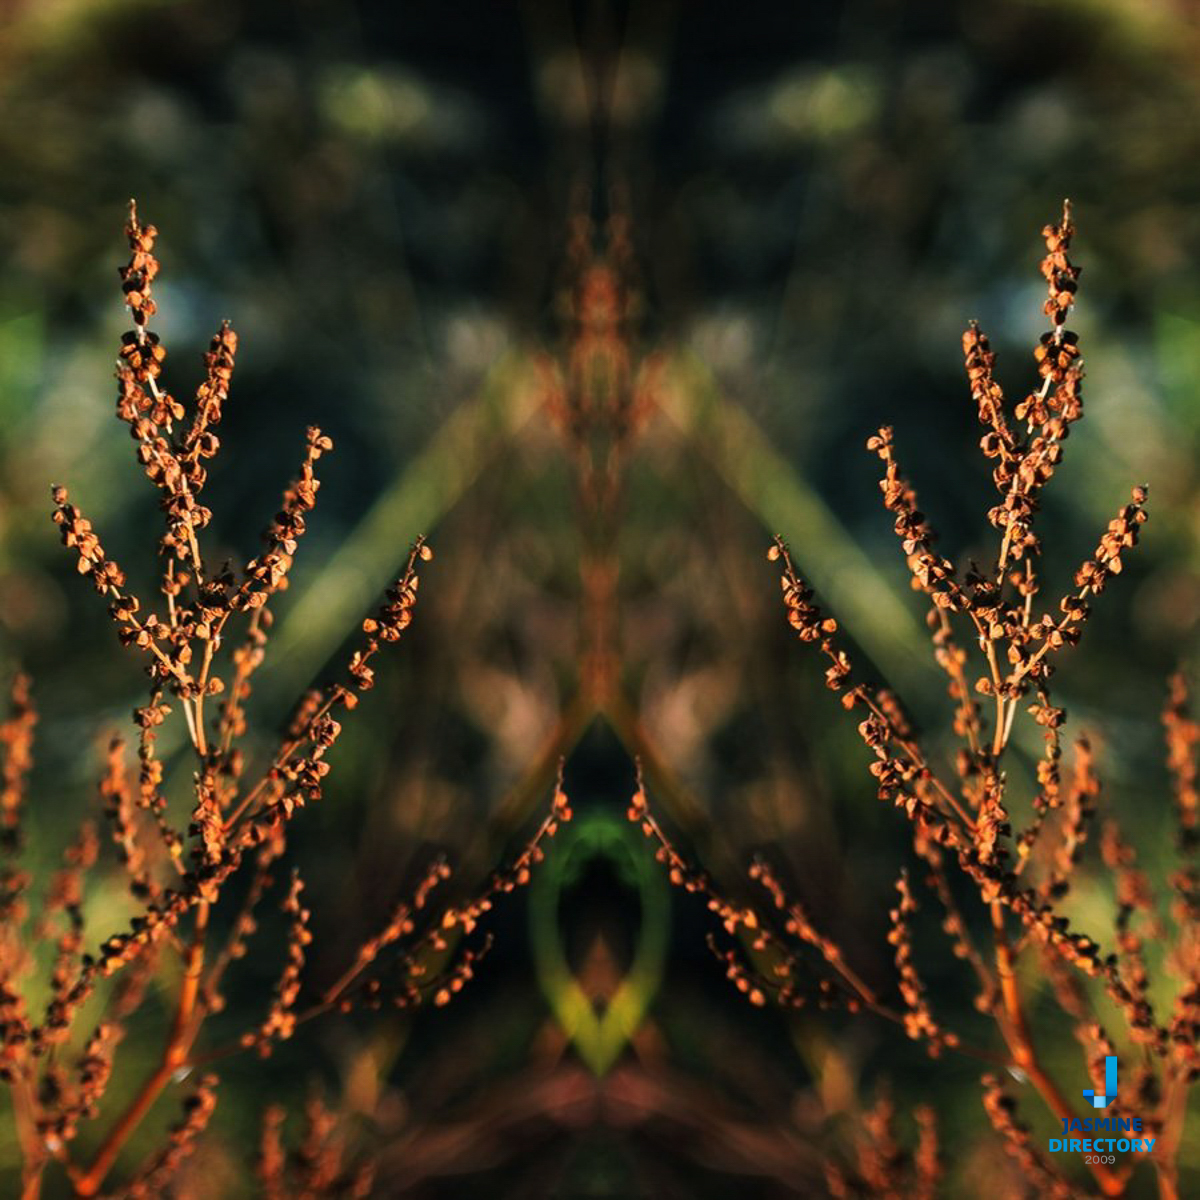 Abstract Symmetrical Photograph